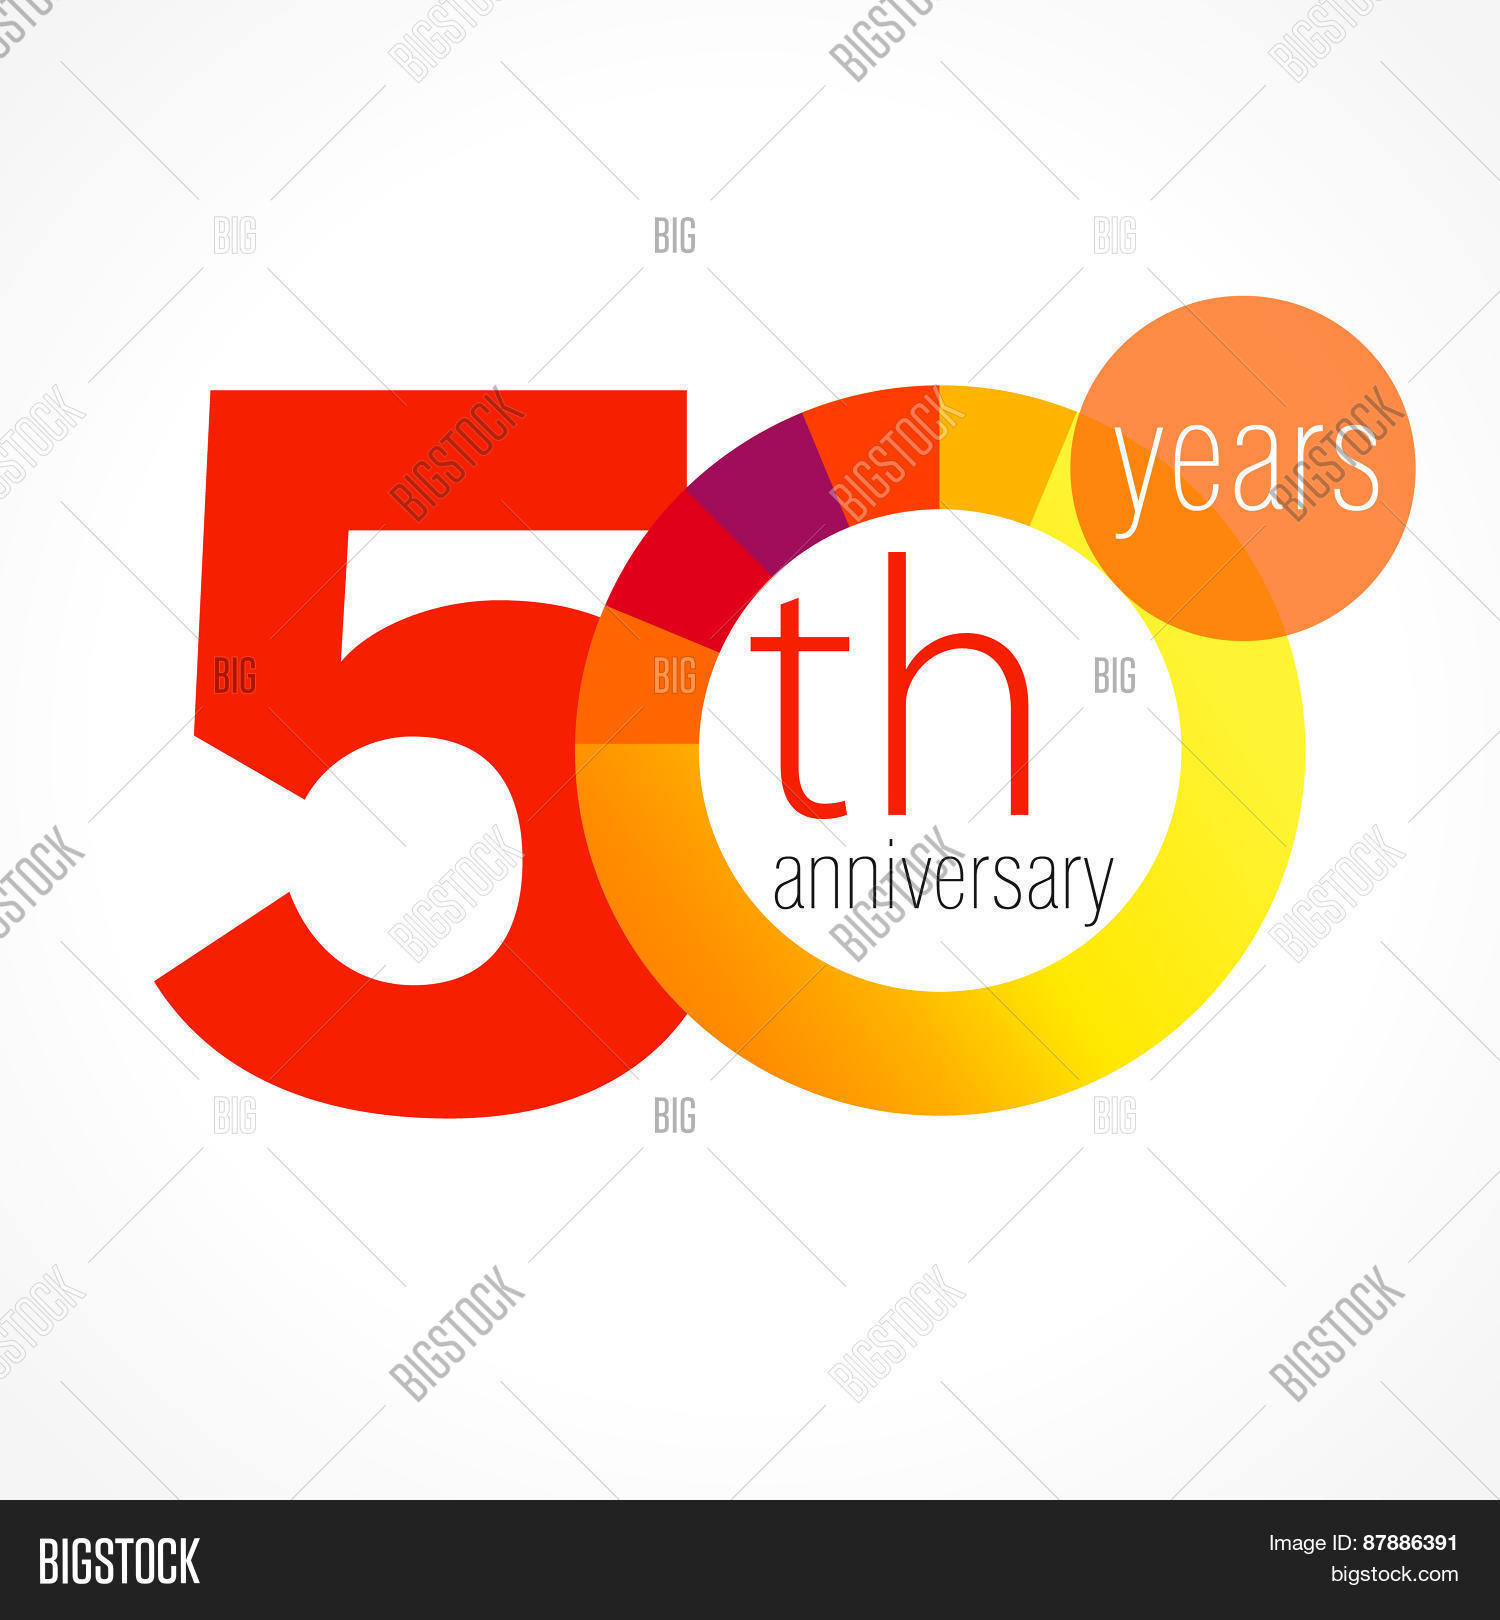 50 Years Old Round Vector Photo Free Trial Bigstock